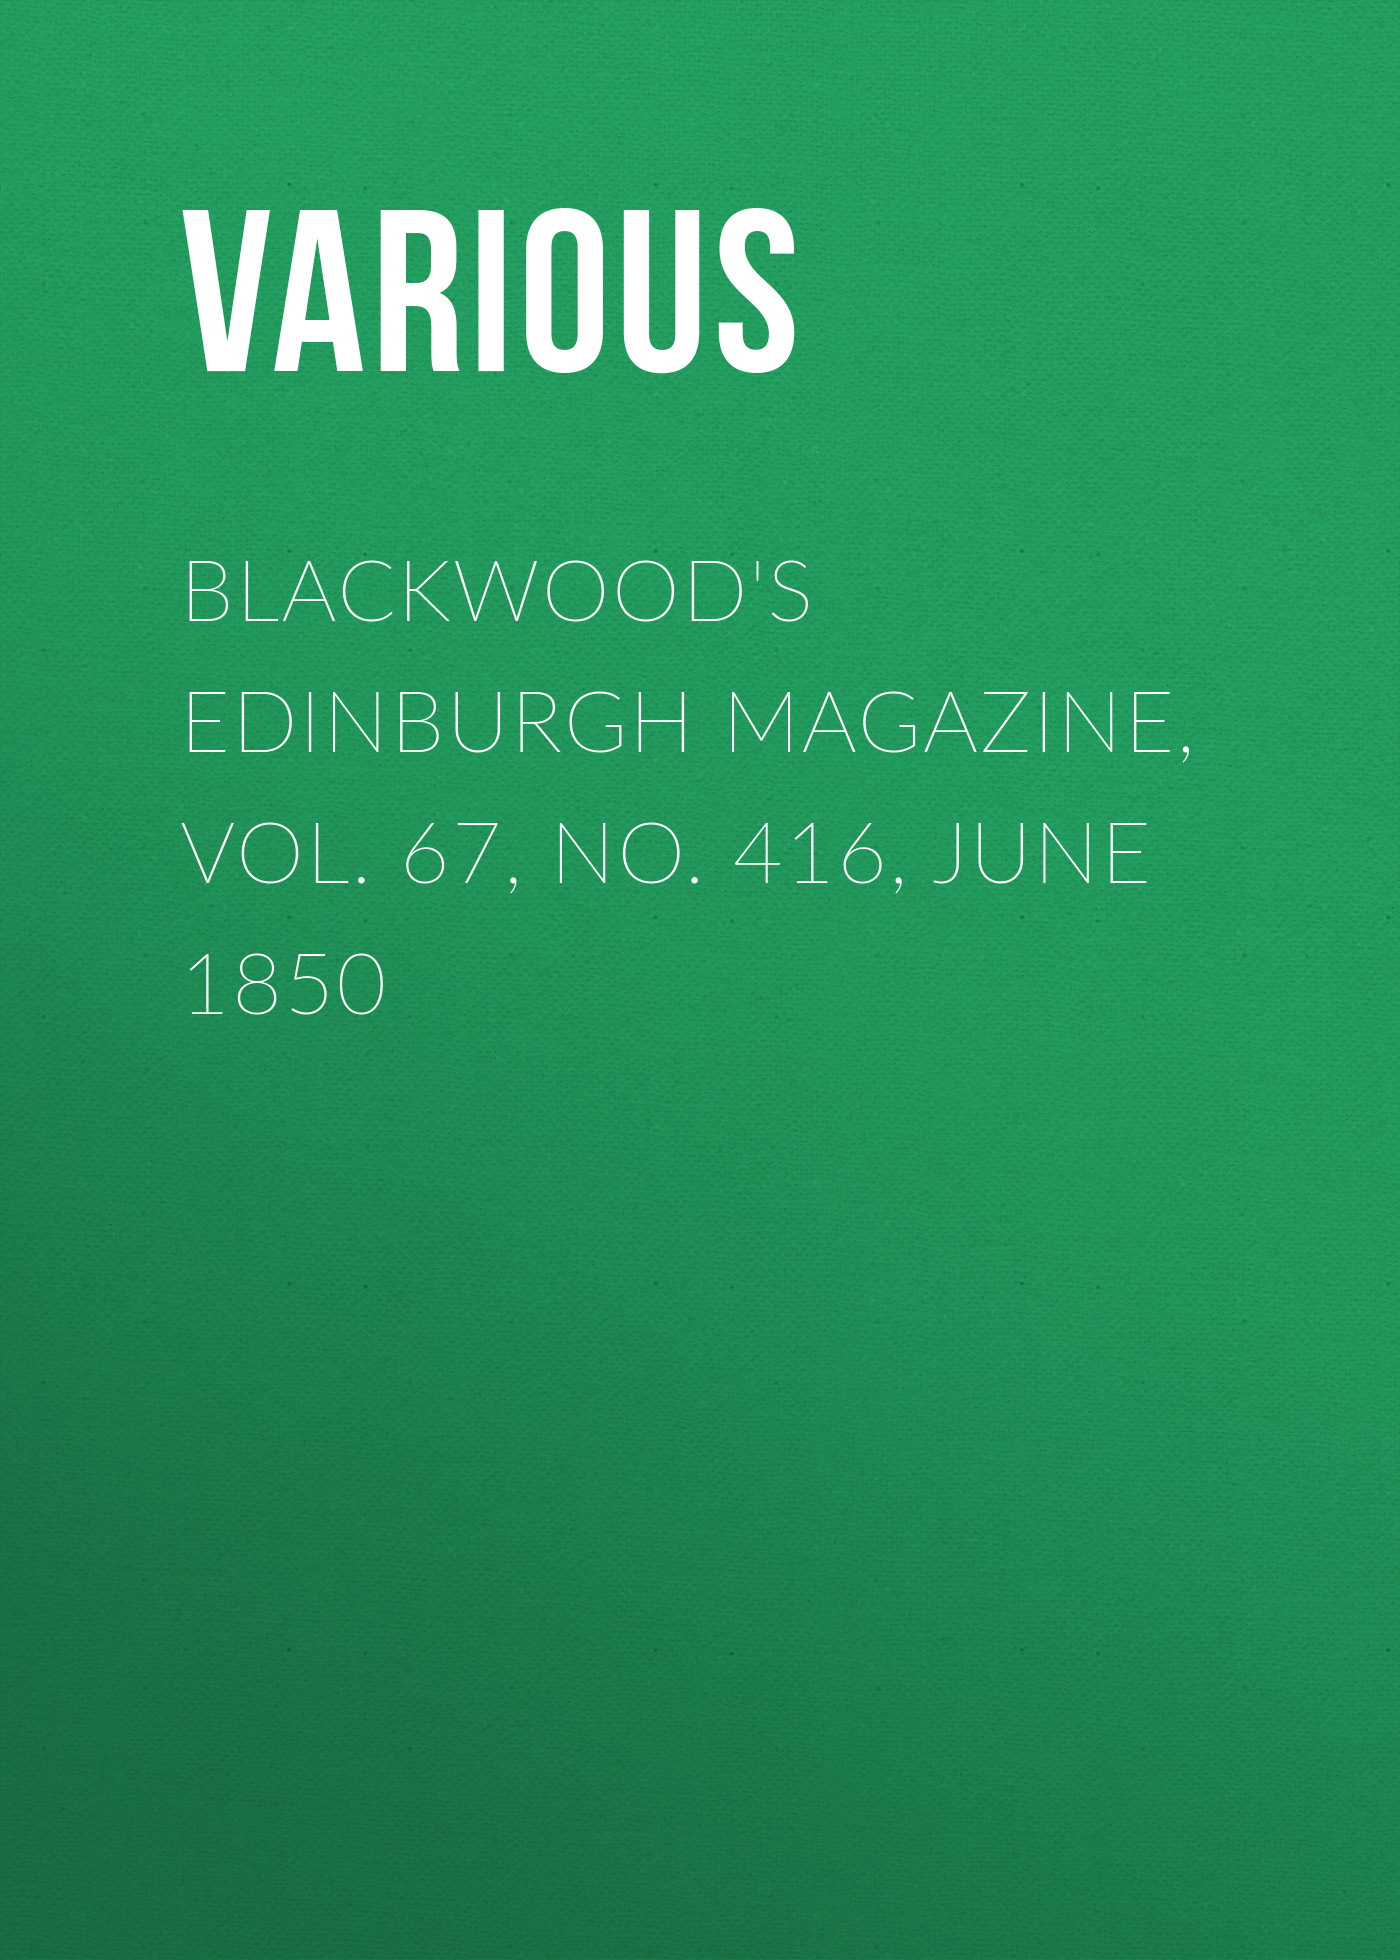 лучшая цена Various Blackwood's Edinburgh Magazine, Vol. 67, No. 416, June 1850